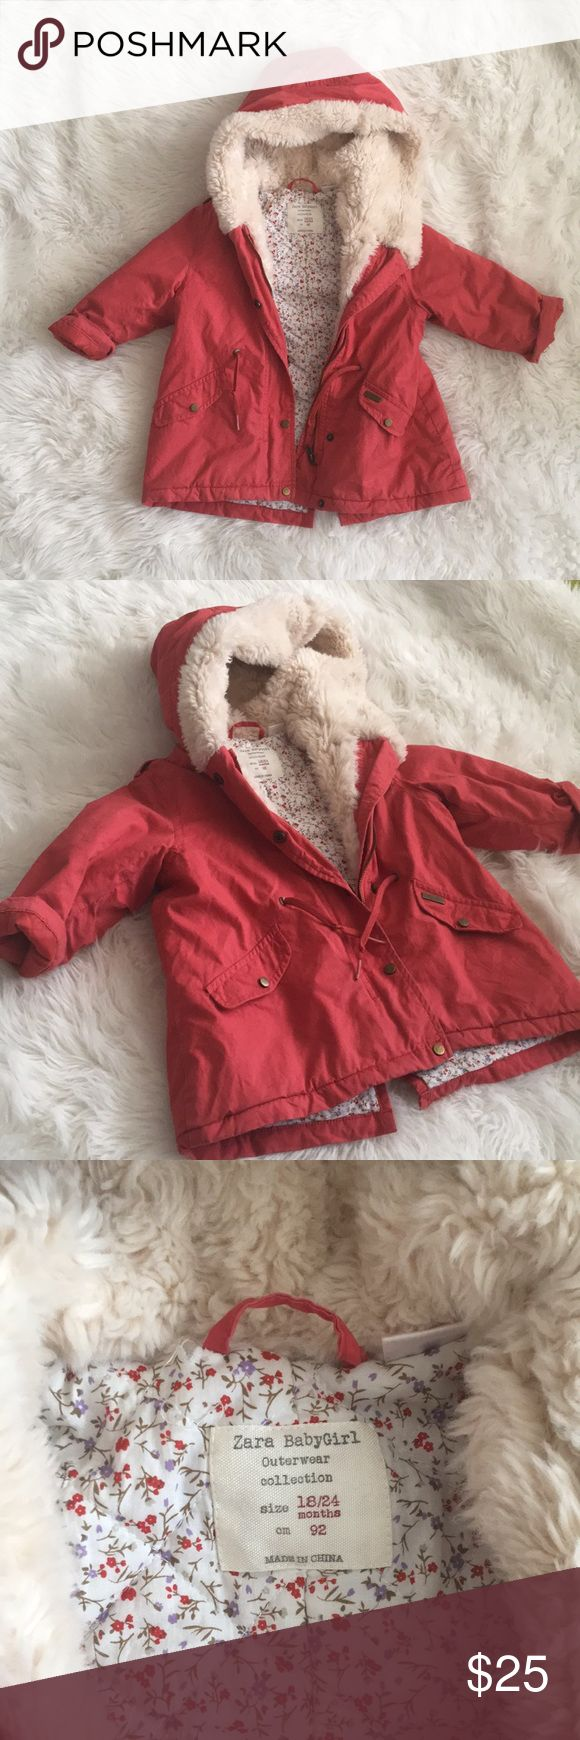 Zara Winter Coat - Toddler Zara BabyGirl Outerwear Collection - size 18/24mths in great condition!! This adorable girls coat is red with faux fur (white) / floral lining details. Zara Jackets & Coats Pea Coats